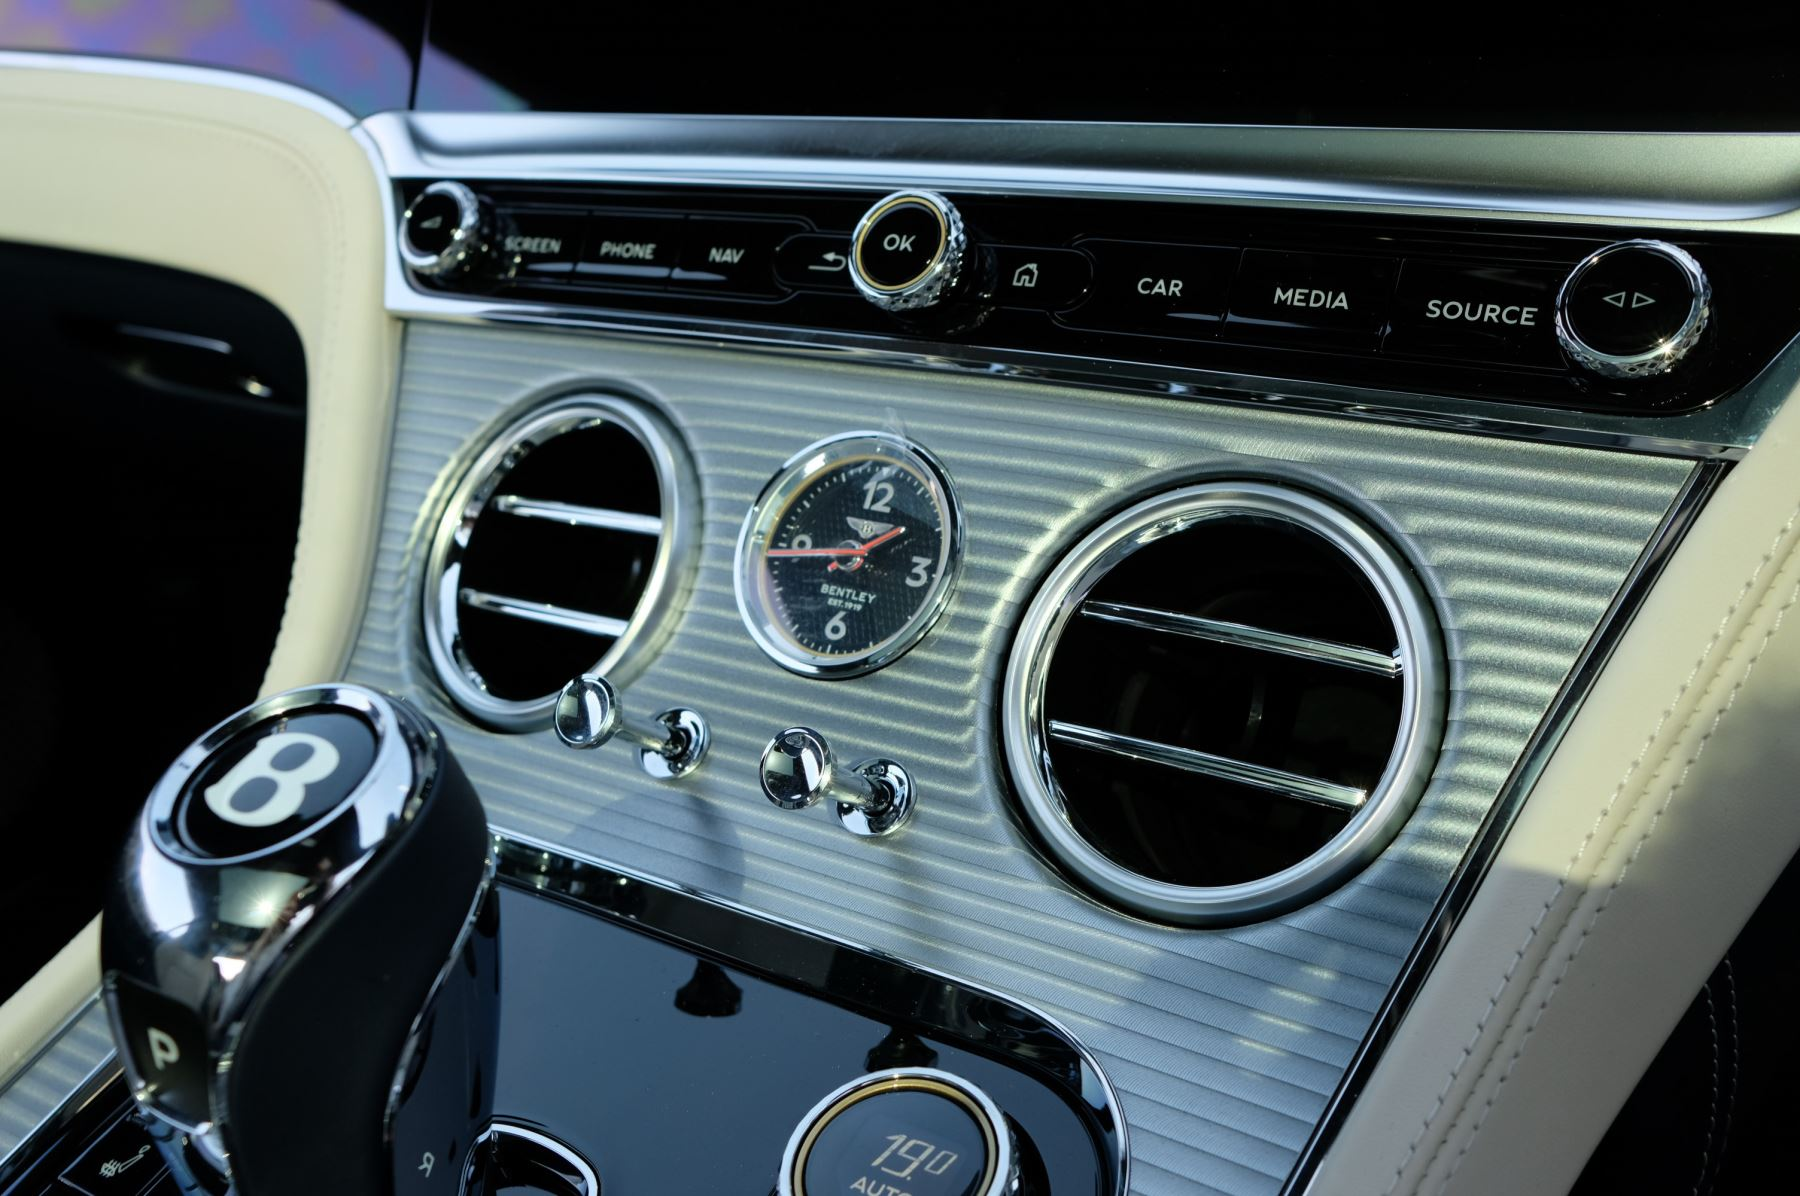 Bentley Continental GT 4.0 V8 Mulliner Edition 2dr Auto - City Specification - Panoramic Glass Roof image 21